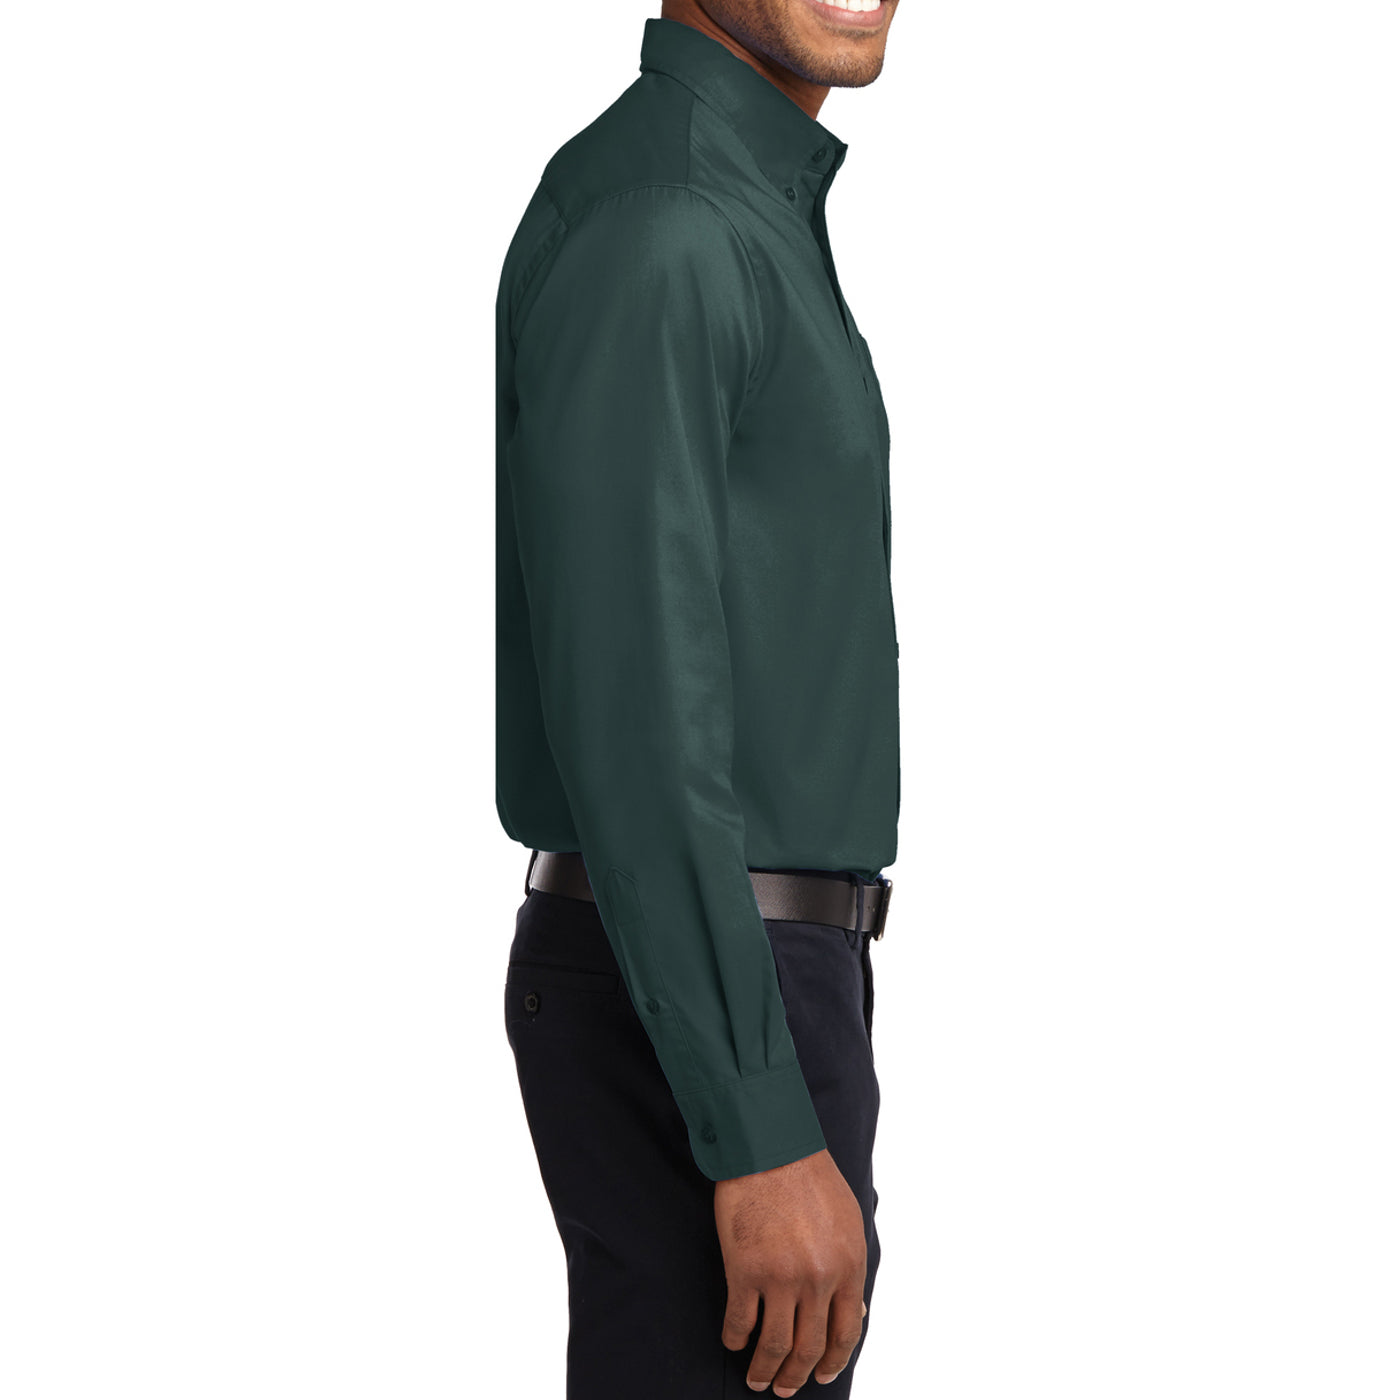 Men's Long Sleeve Easy Care Shirt - Dark Green/ Navy - Side